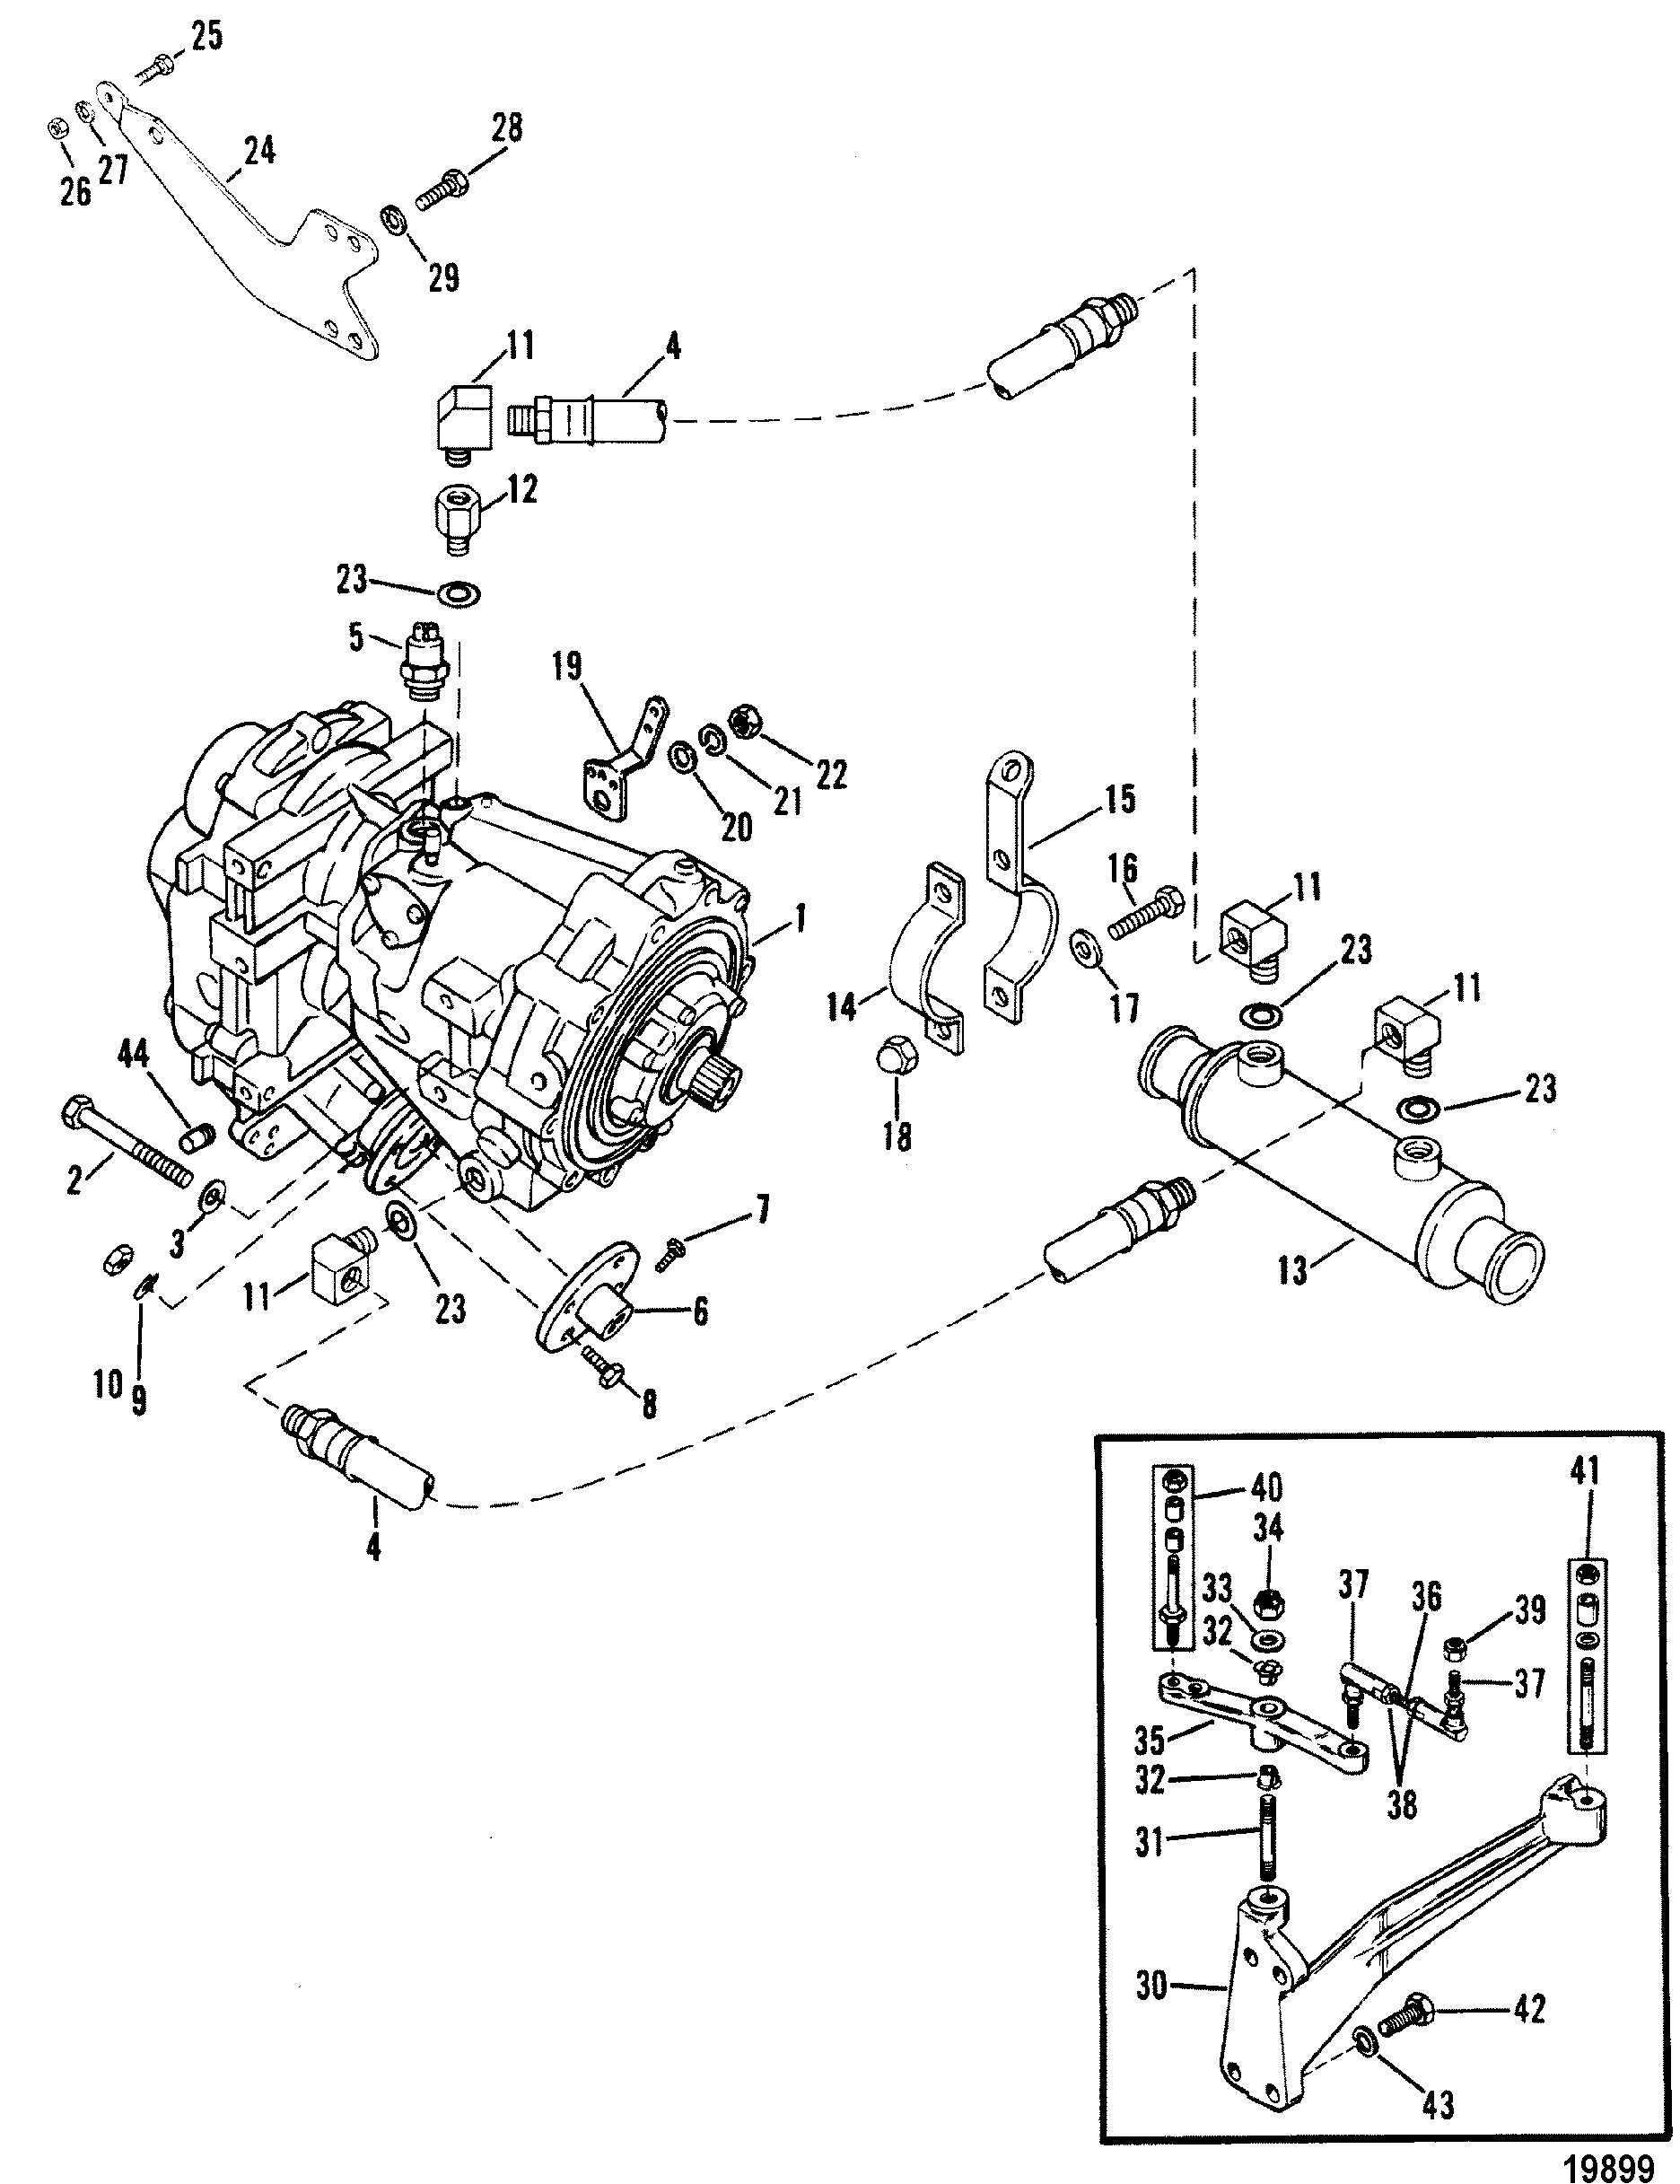 Transmission And Related Parts V Drive For Mercruiser